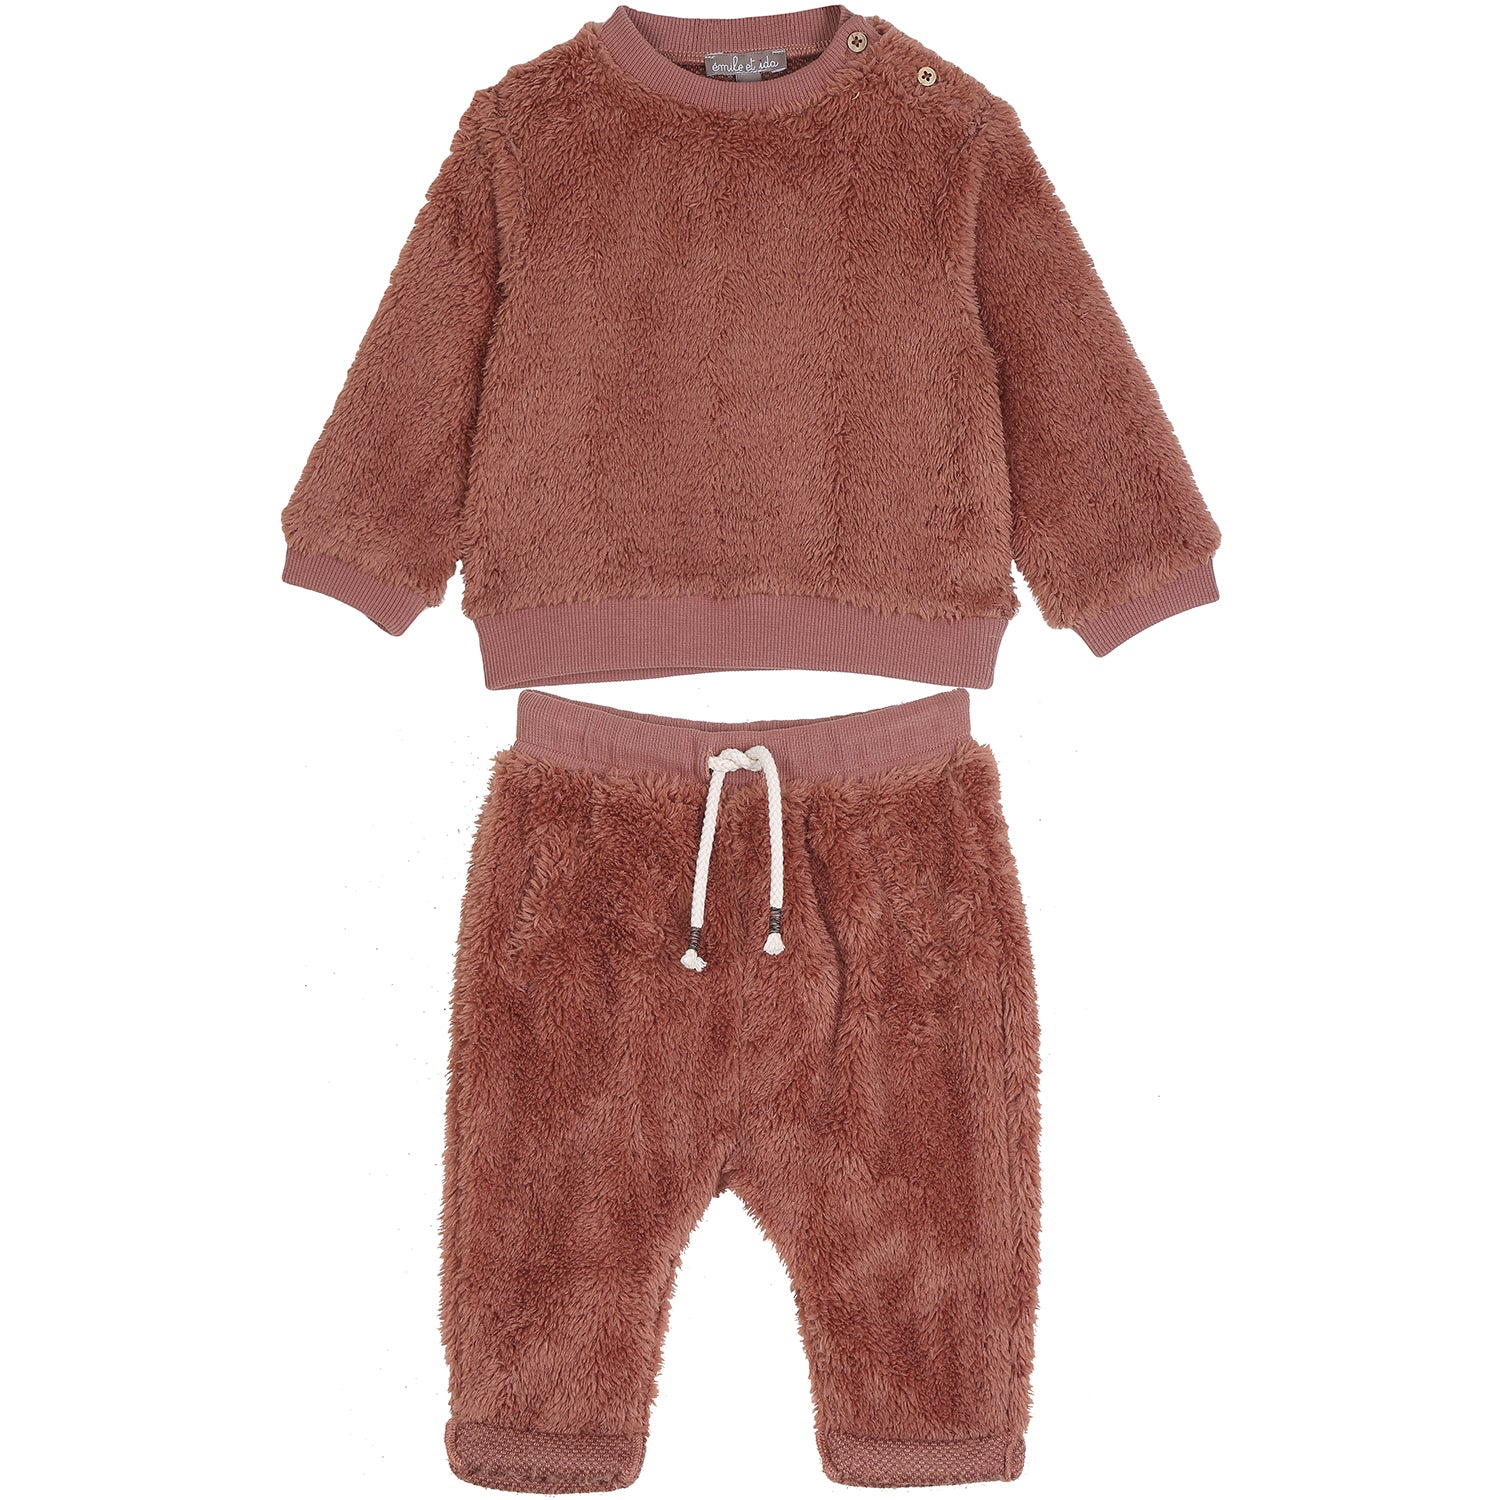 emile et ida faux fur sweat suit